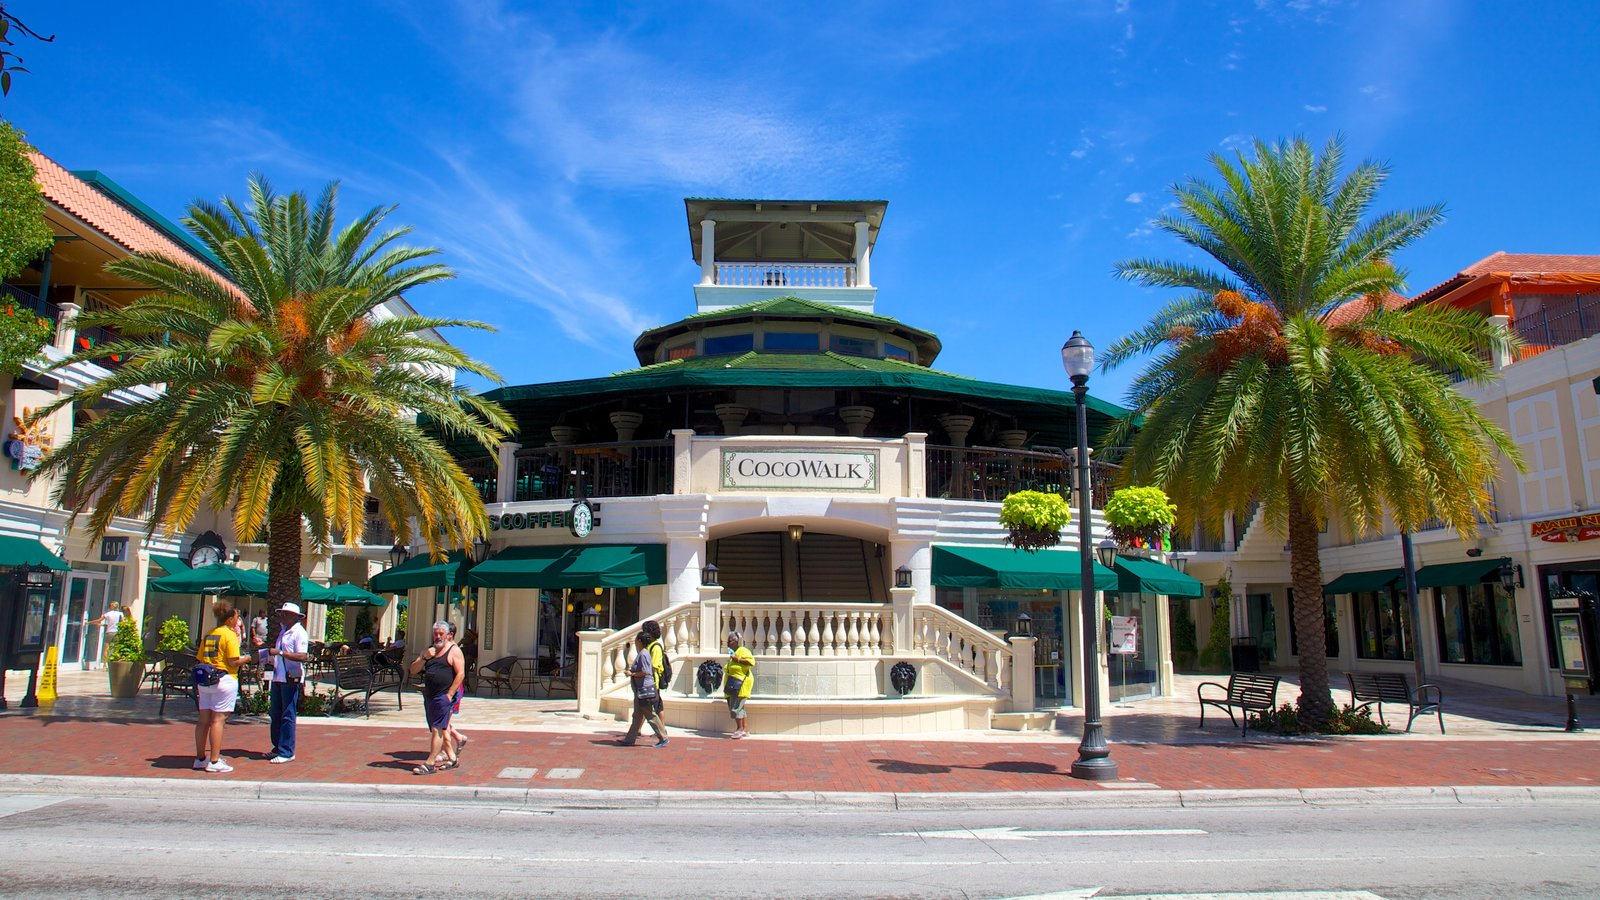 Coconut Grove showing shopping, a city and a square or plaza